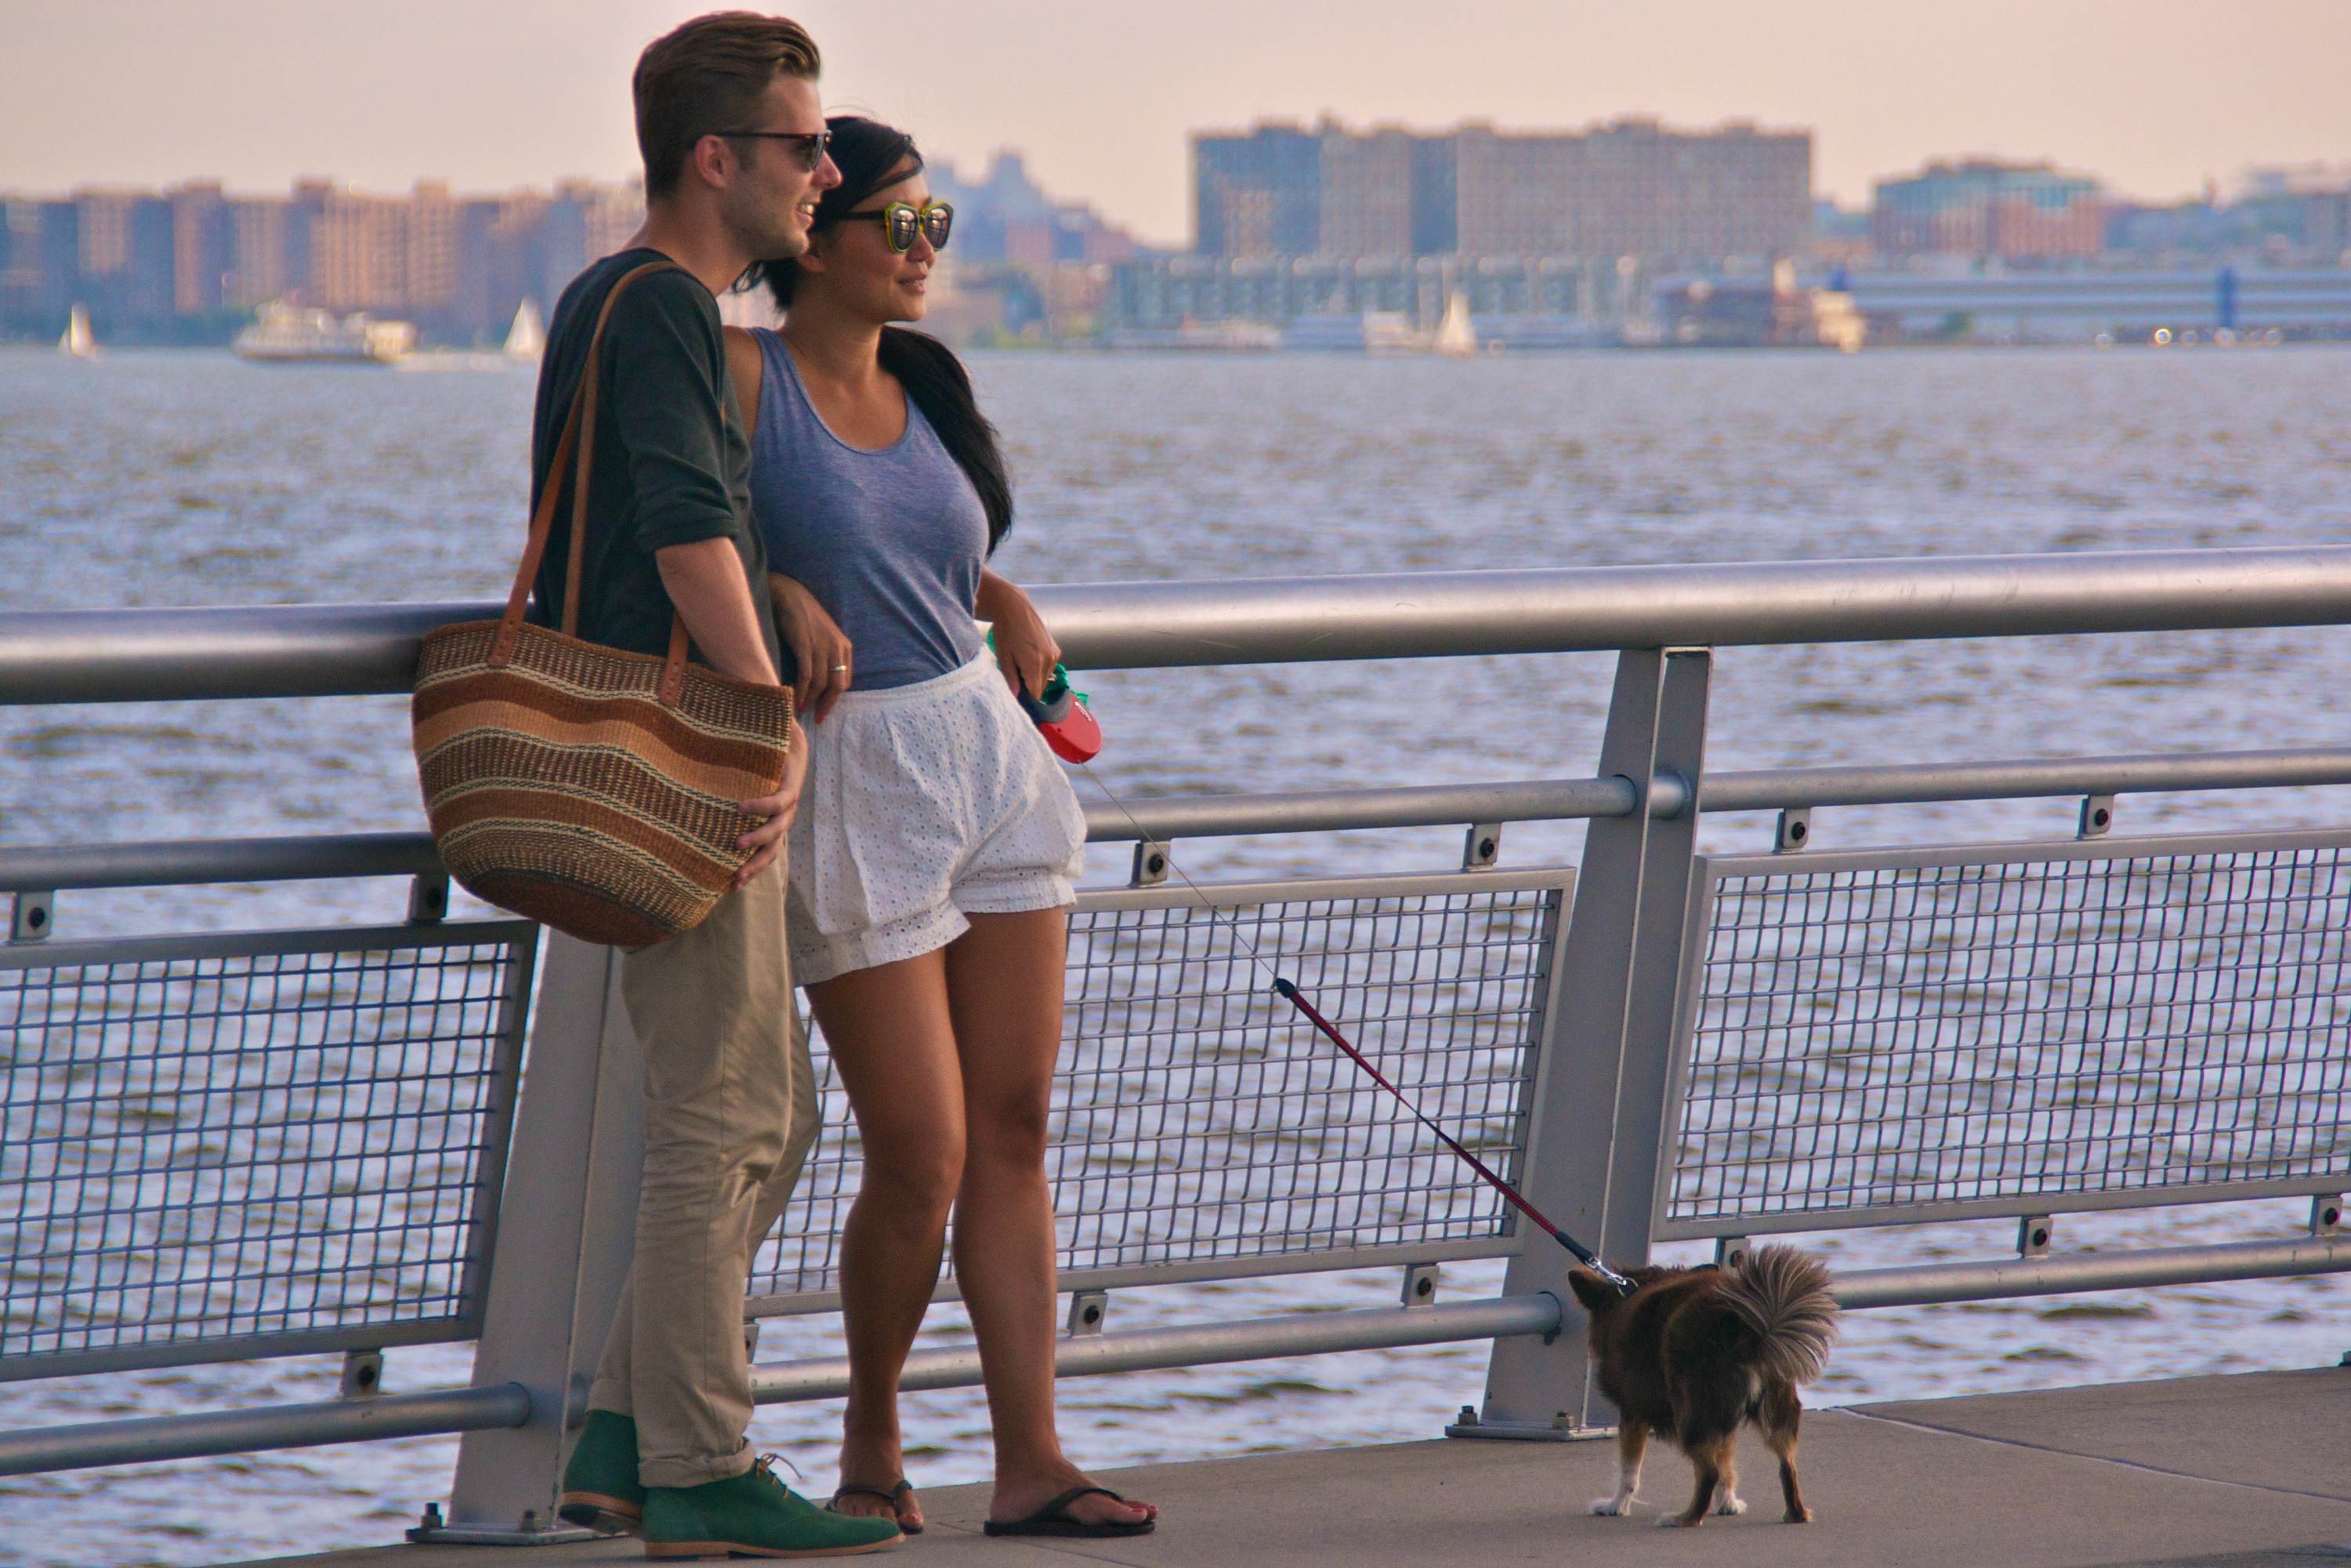 Date ideas in nyc including romantic walks and adventures